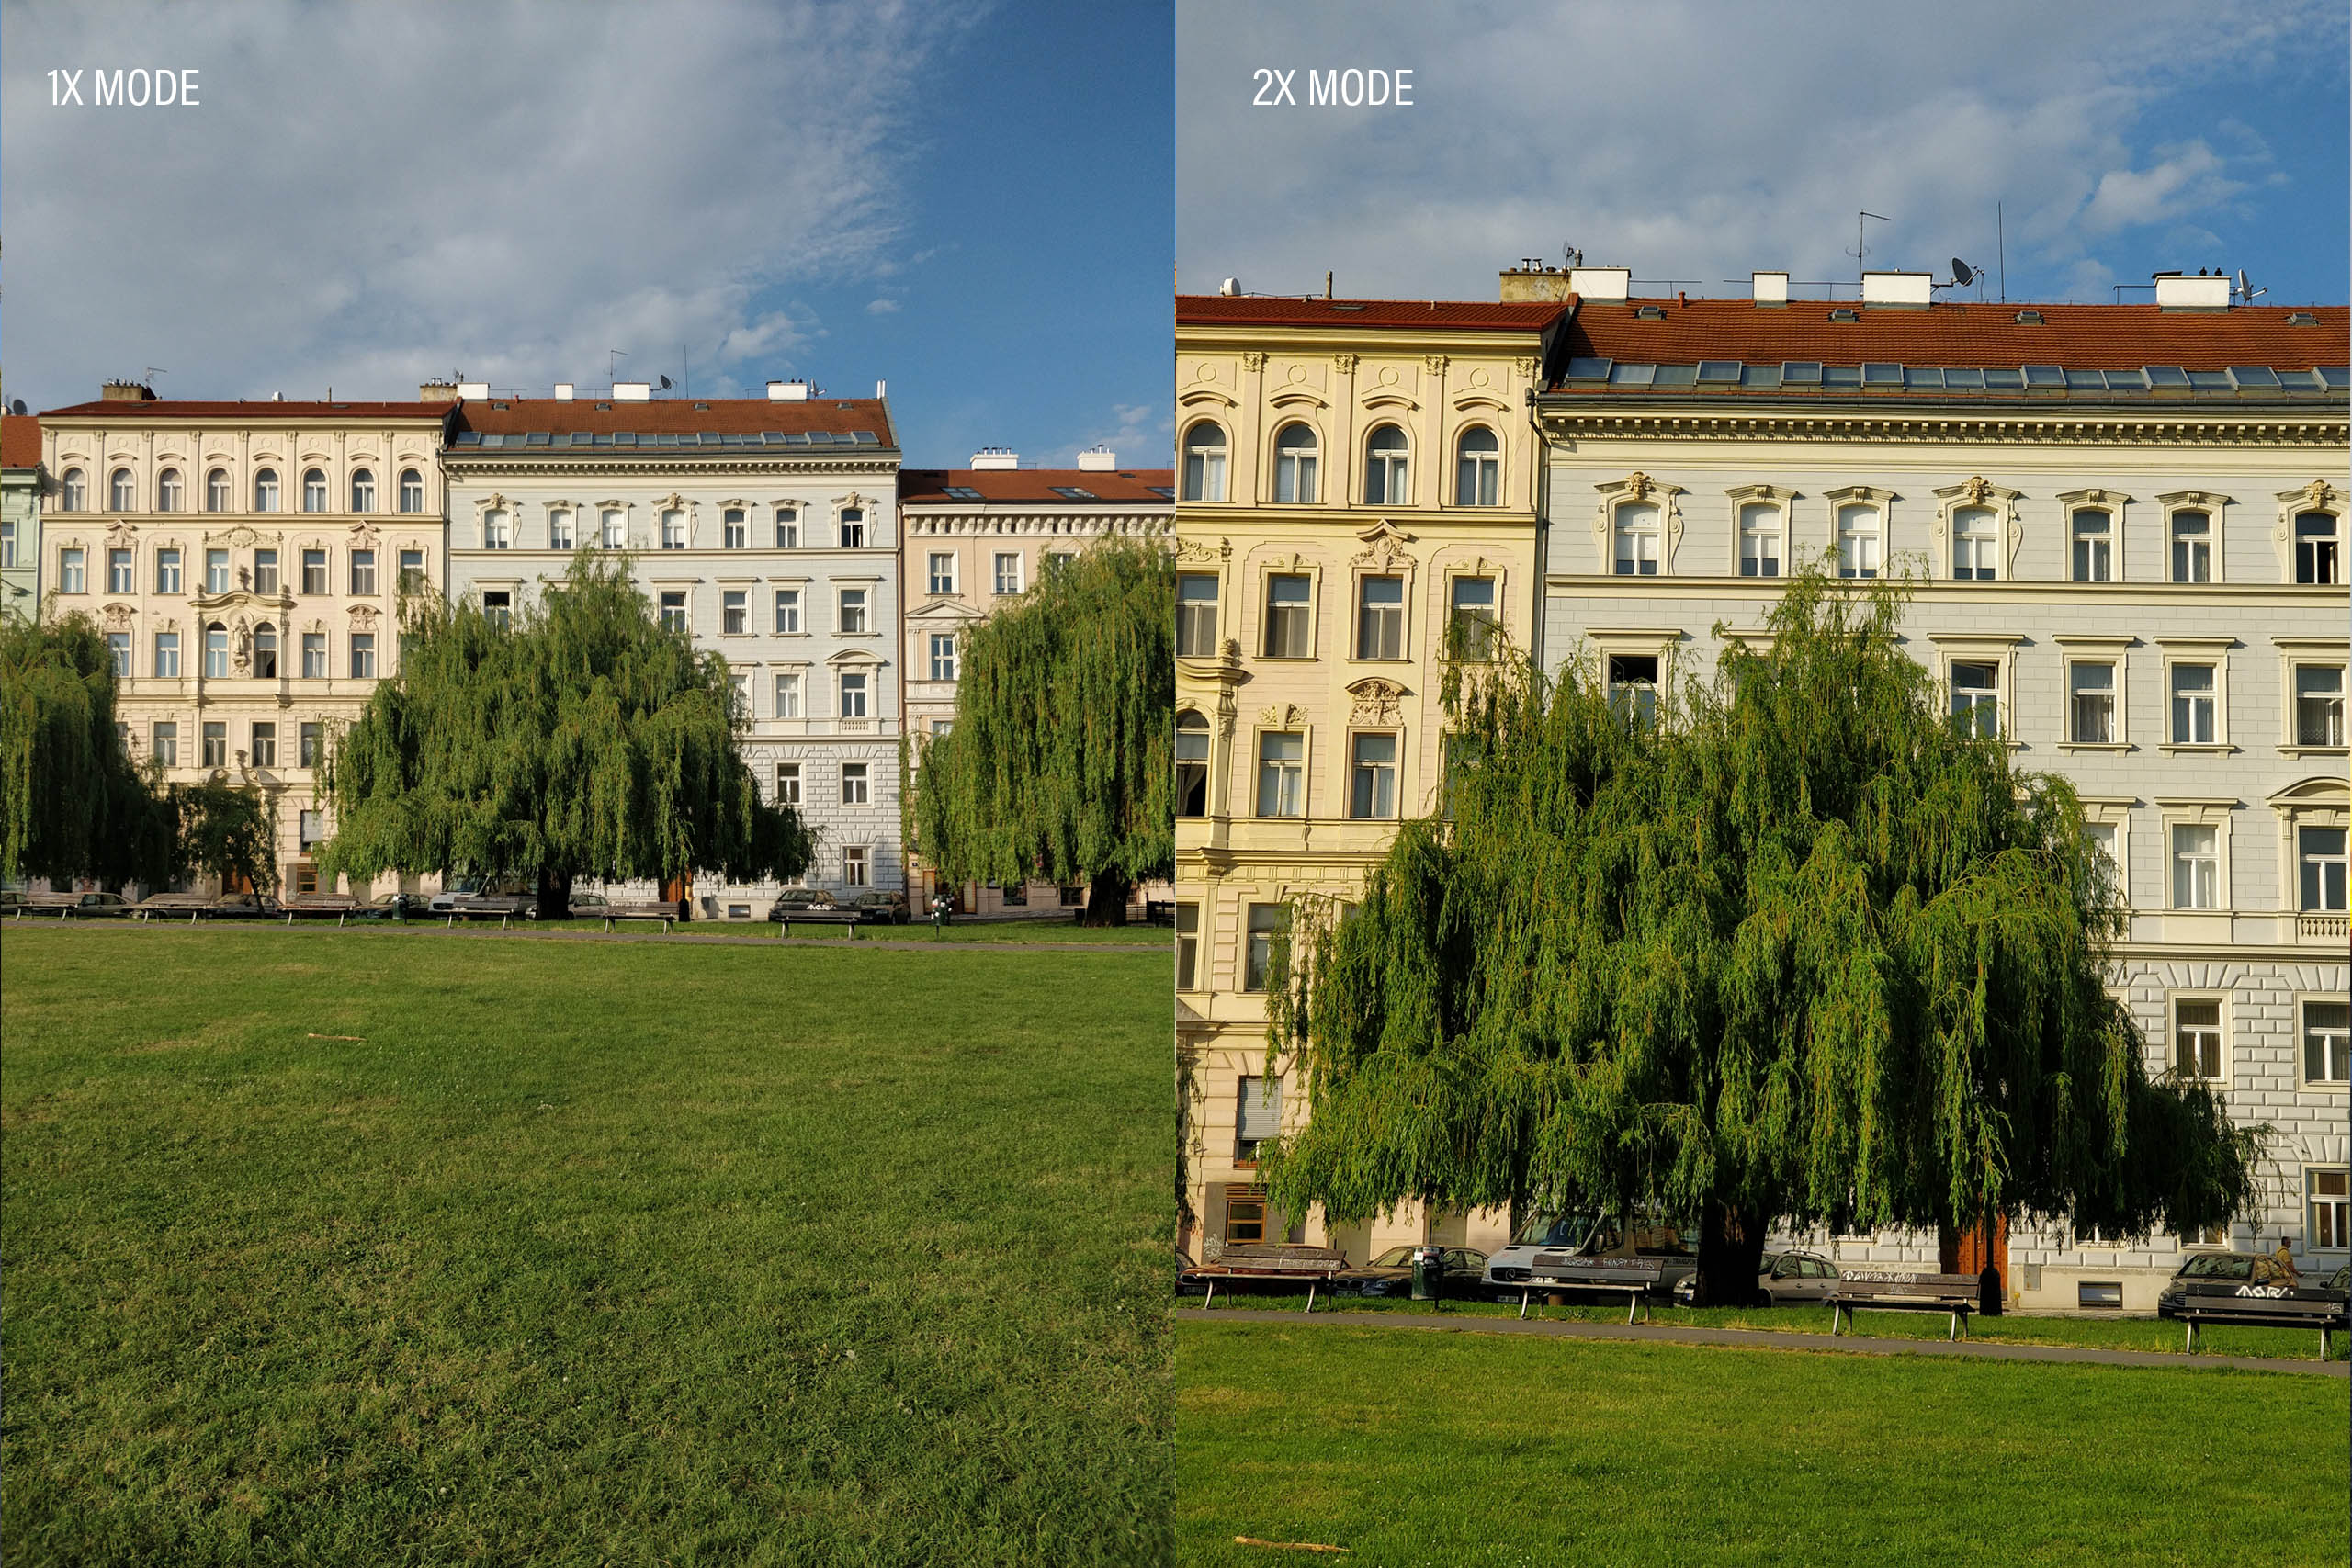 oneplus 5 photo review alessandro michelazzi 1x 2x mode